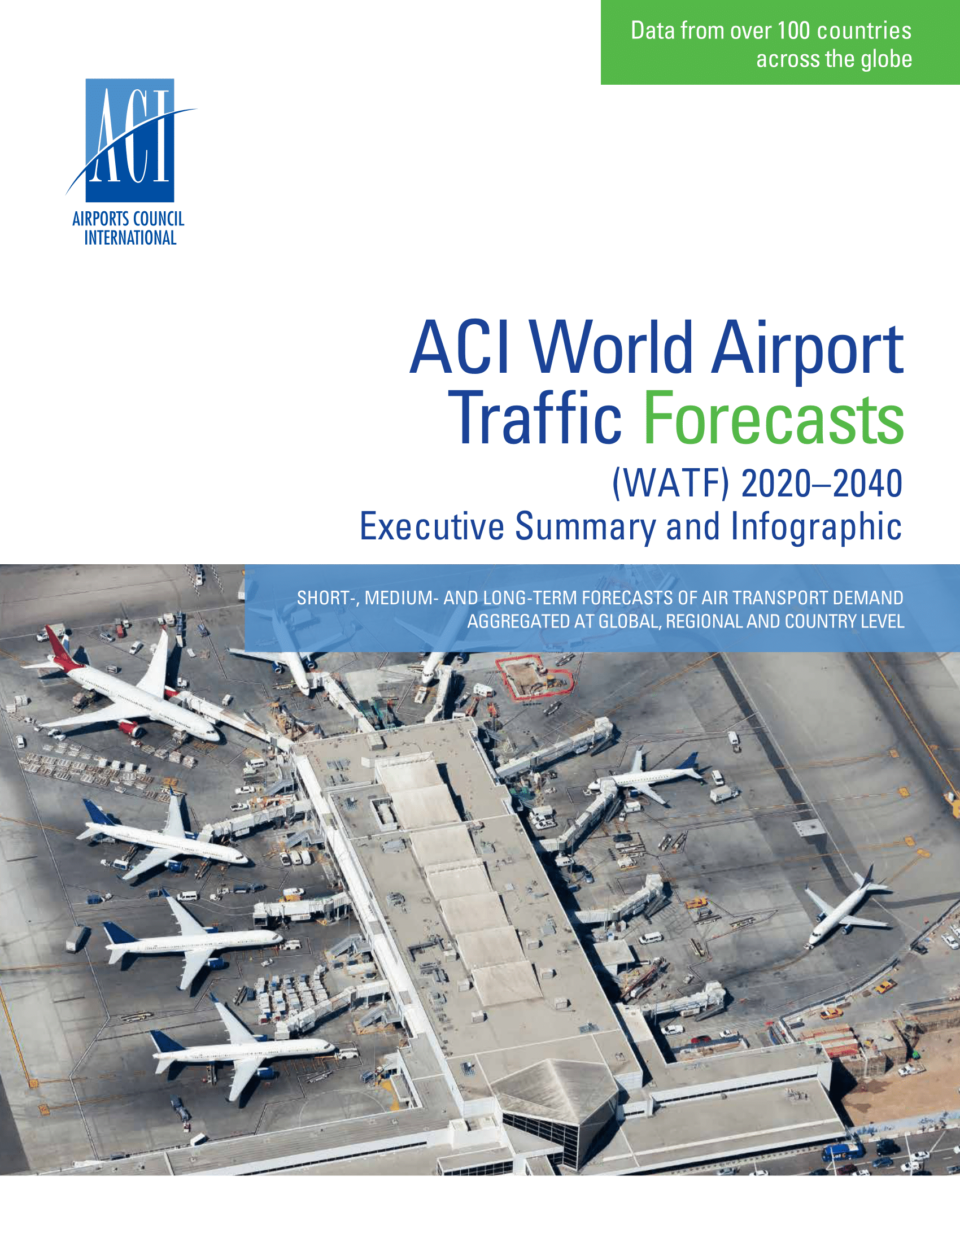 Annual World Airport Traffic Forecasts (WATF)